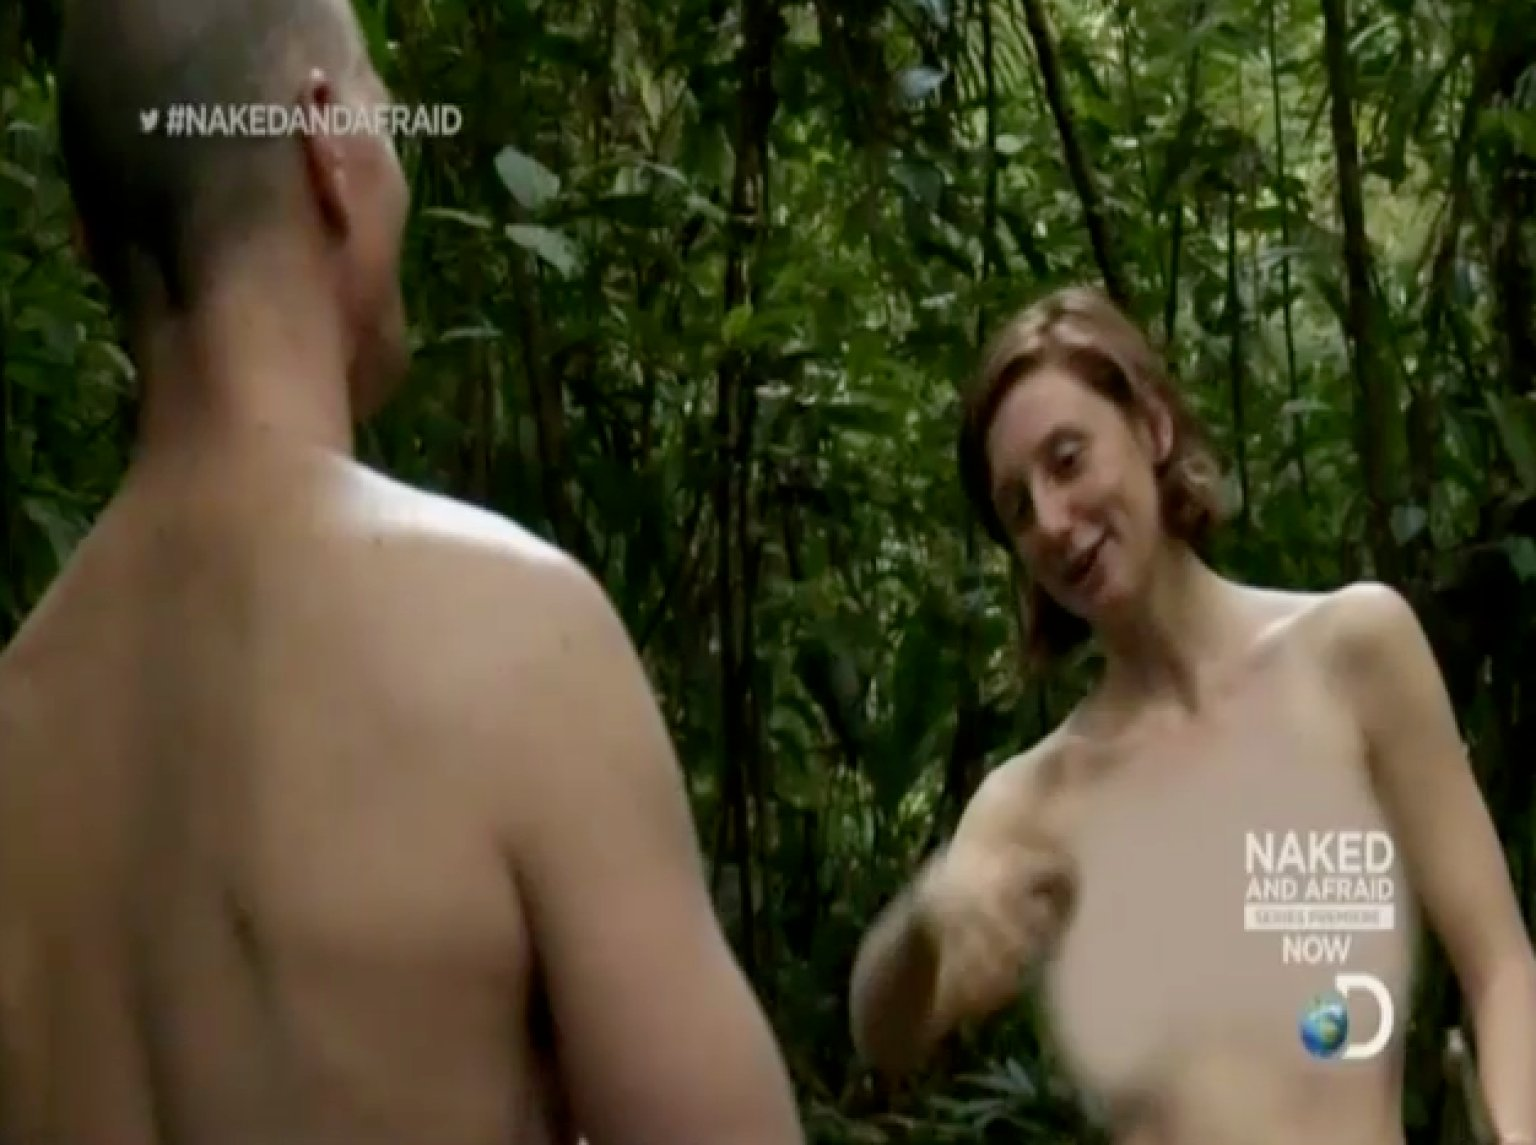 Hot naked and afraid woman pic 967